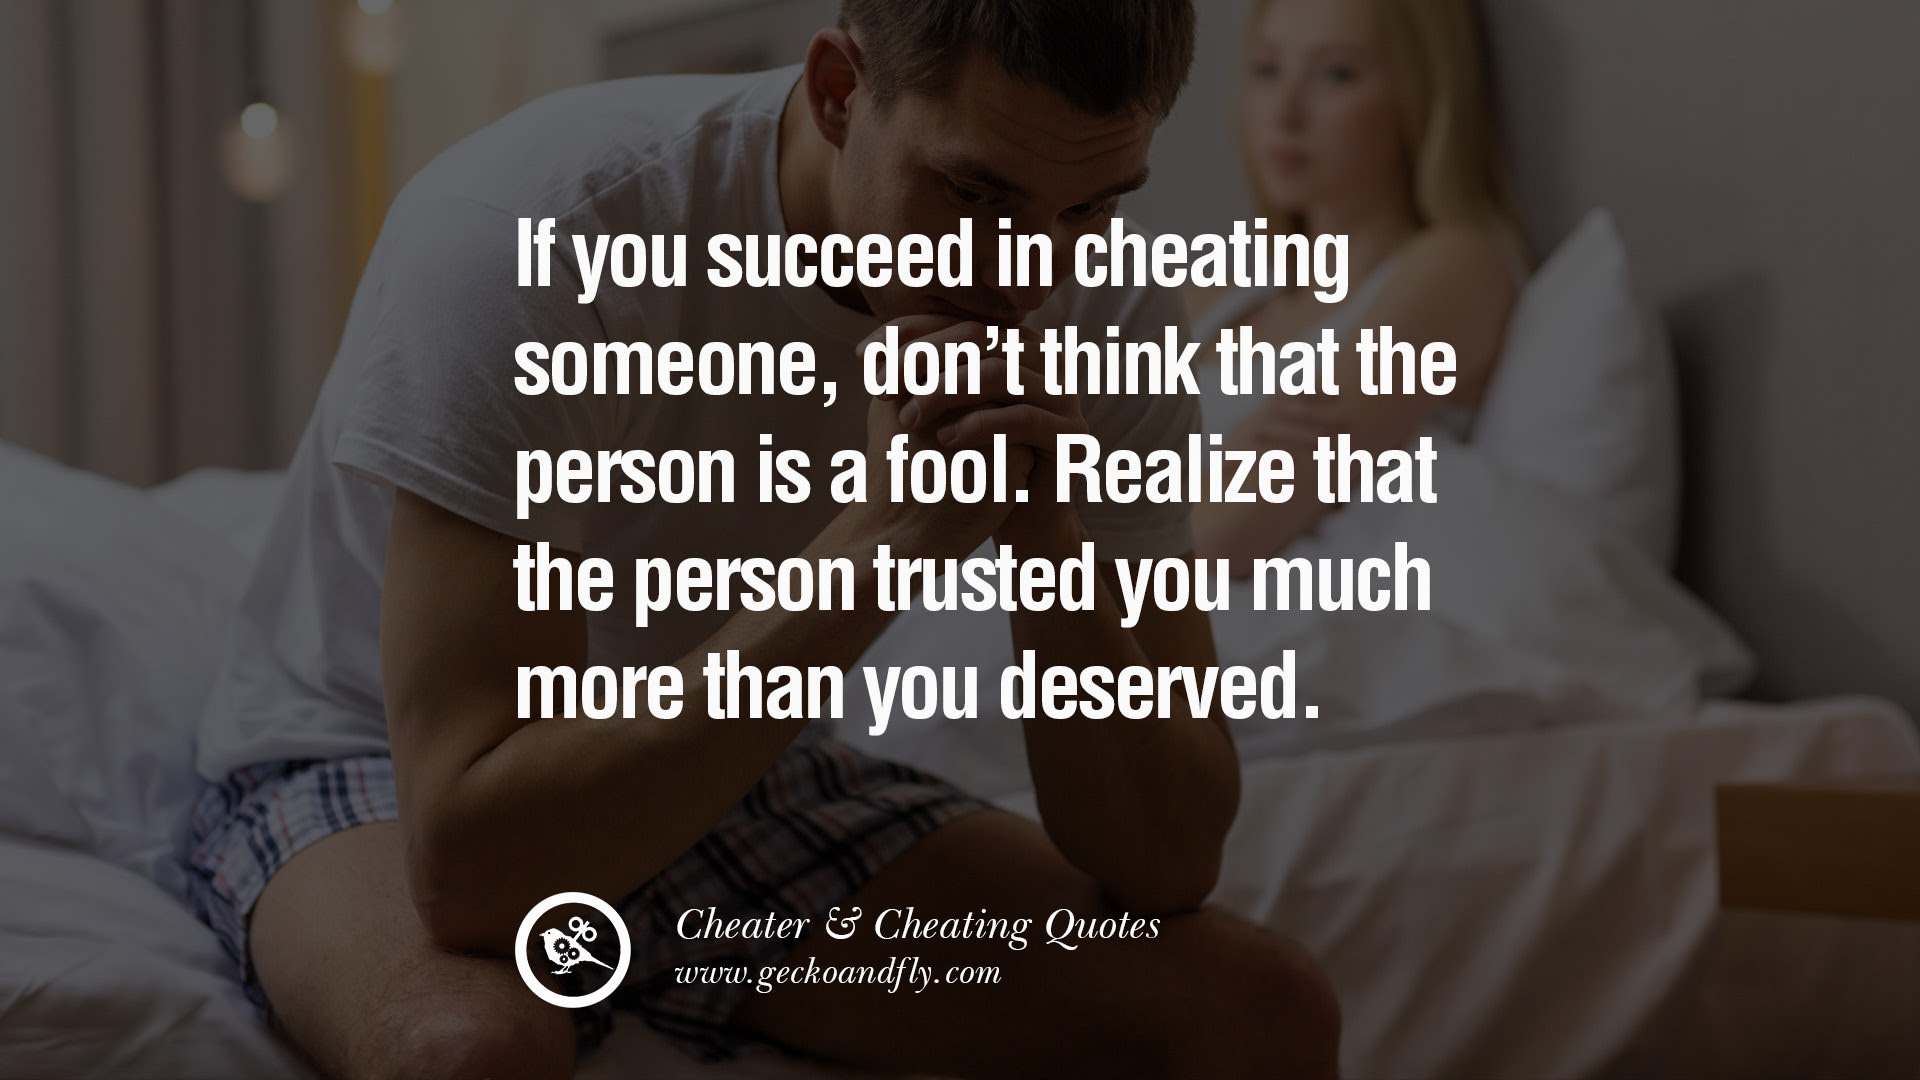 Elegant Cheating Quotes About Being Fooled By A Guy - Paulcong